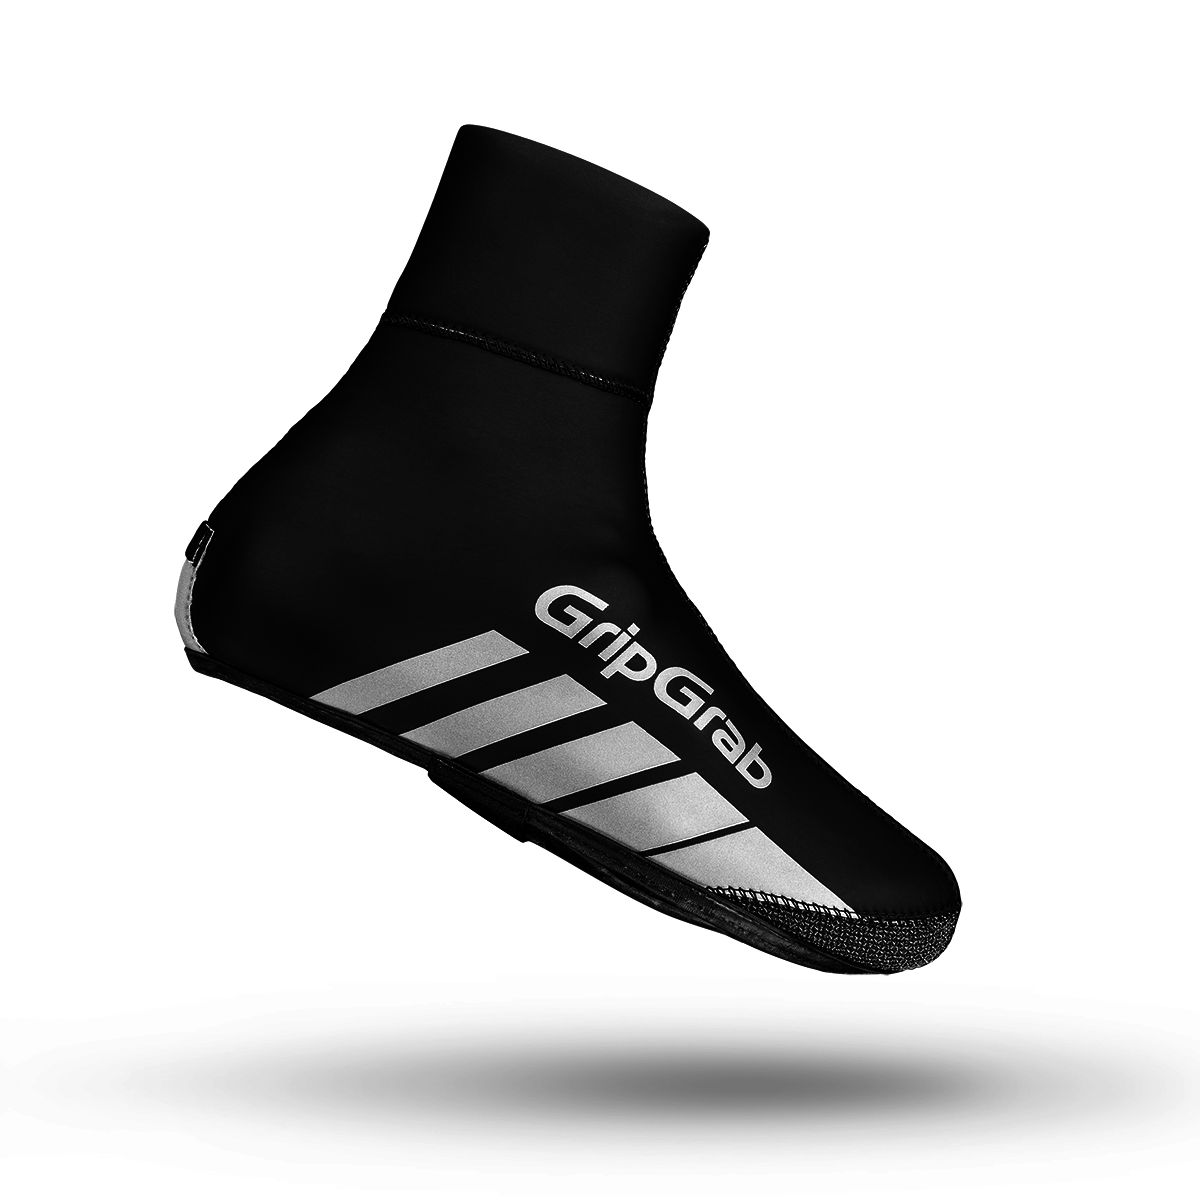 RACE THERMO cycling overshoes